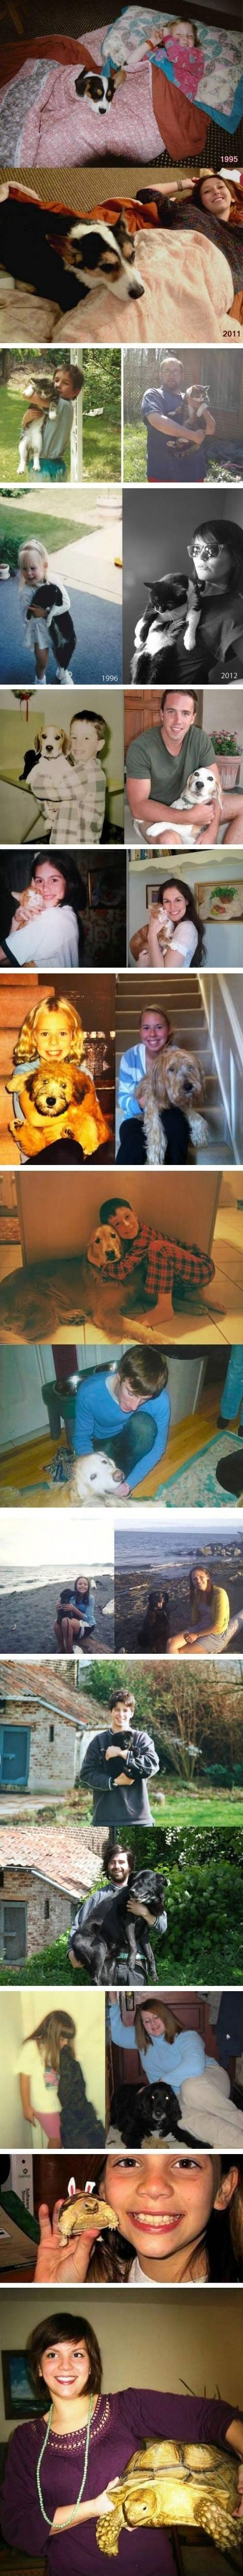 Owners and their pets - many years later #CrazyPics